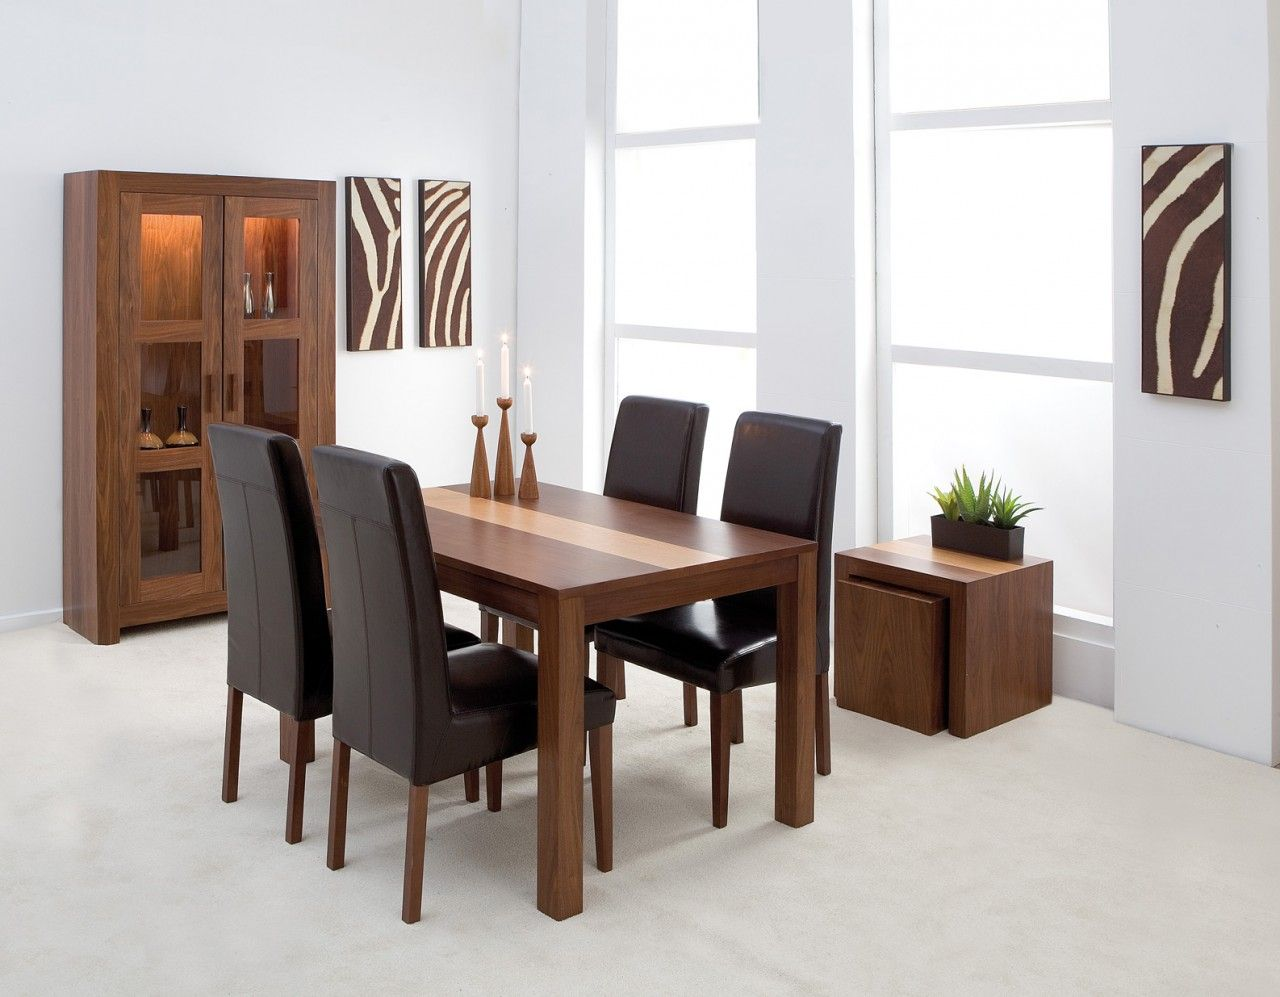 Room 4 Chair Dining Table Set